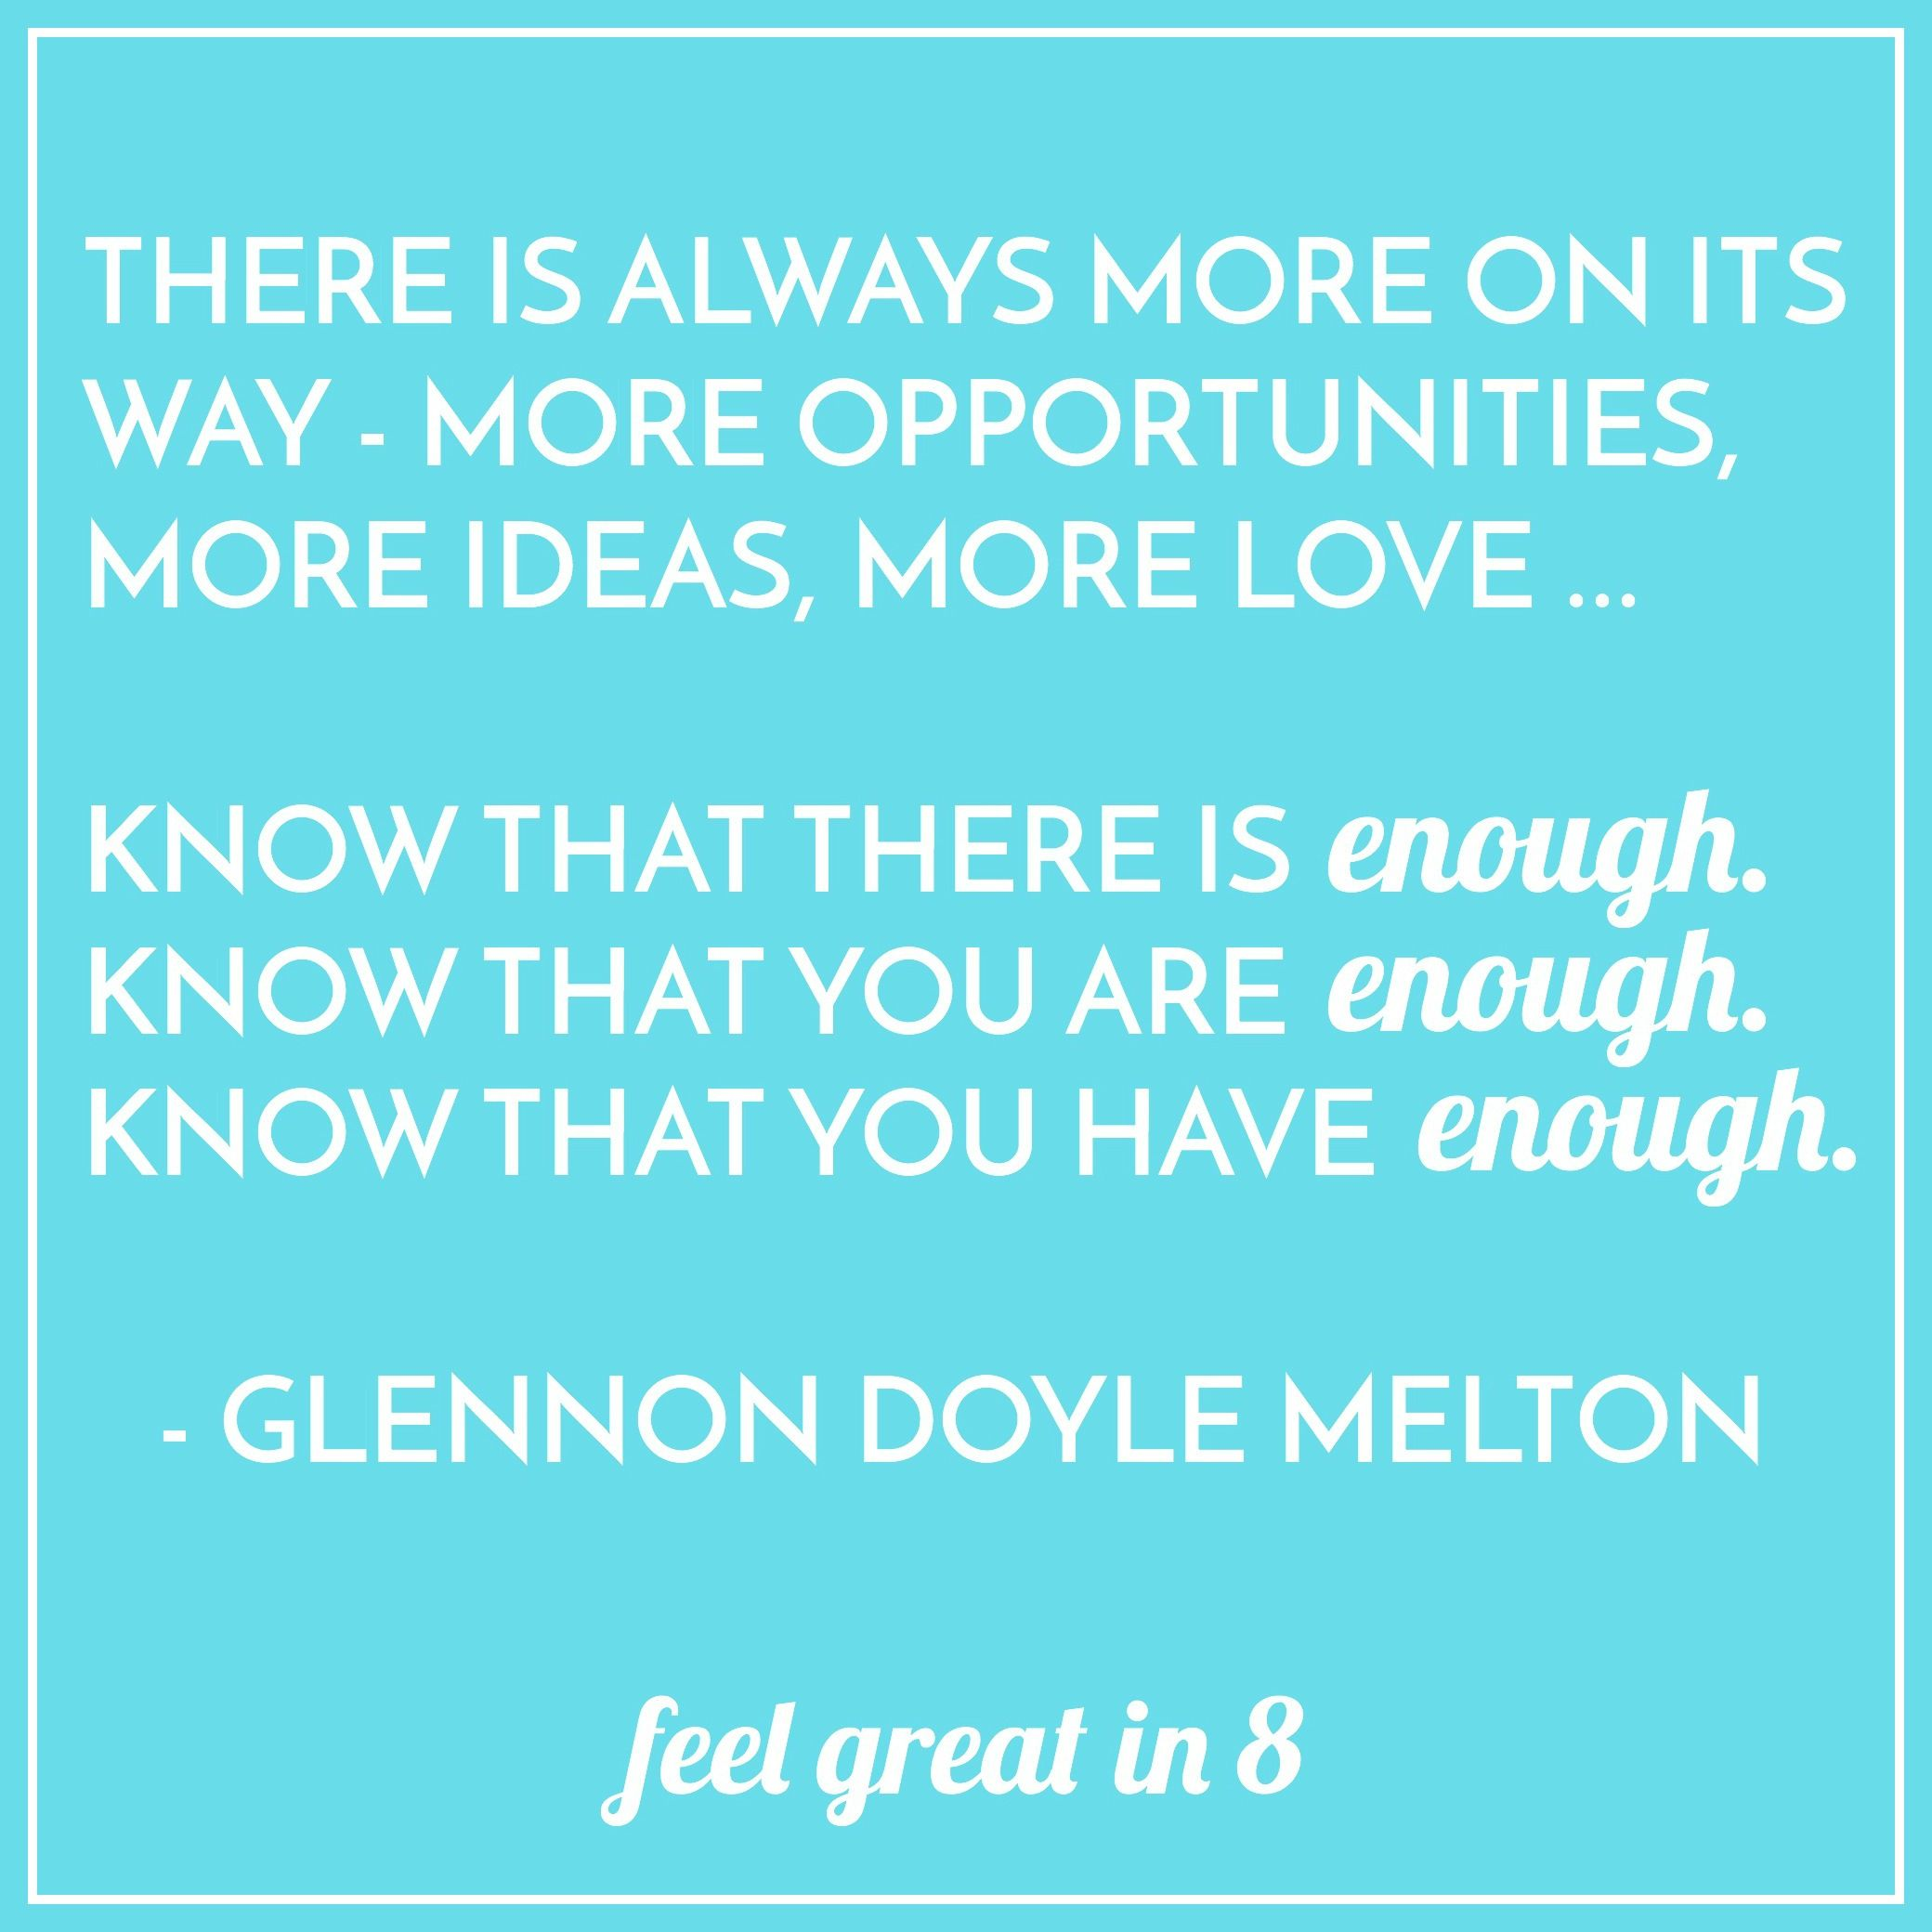 20 Inspirational Quotes To Brighten Your Day: 25 Quotes To Inspire & Brighten Your Day